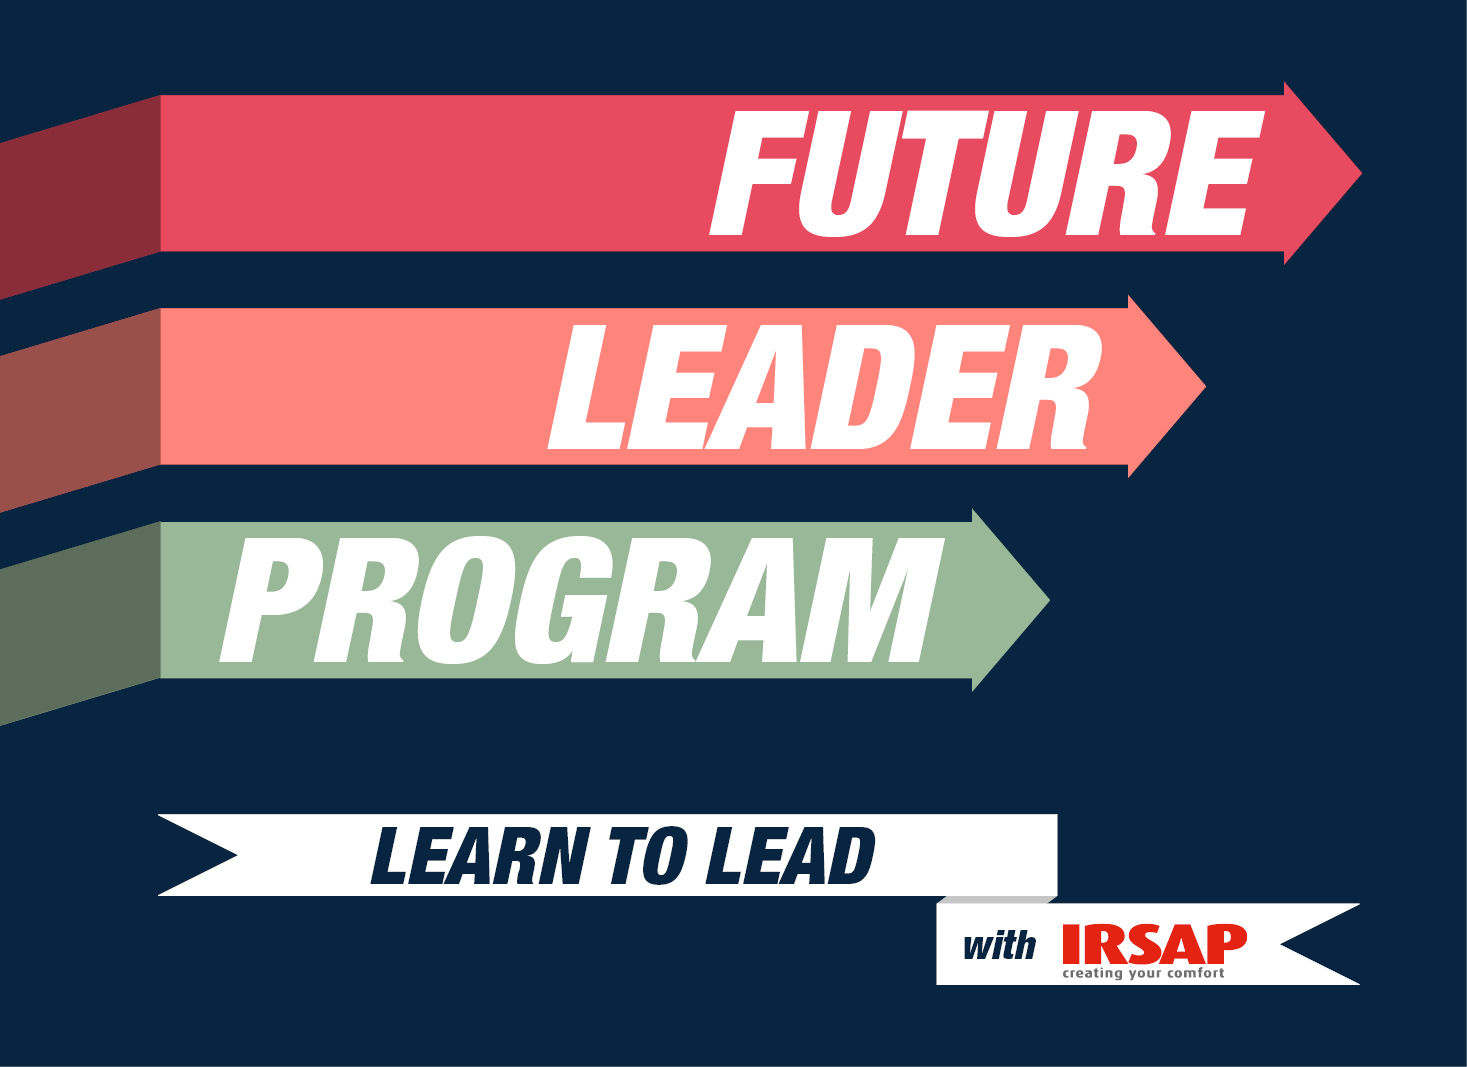 Future Leader Program